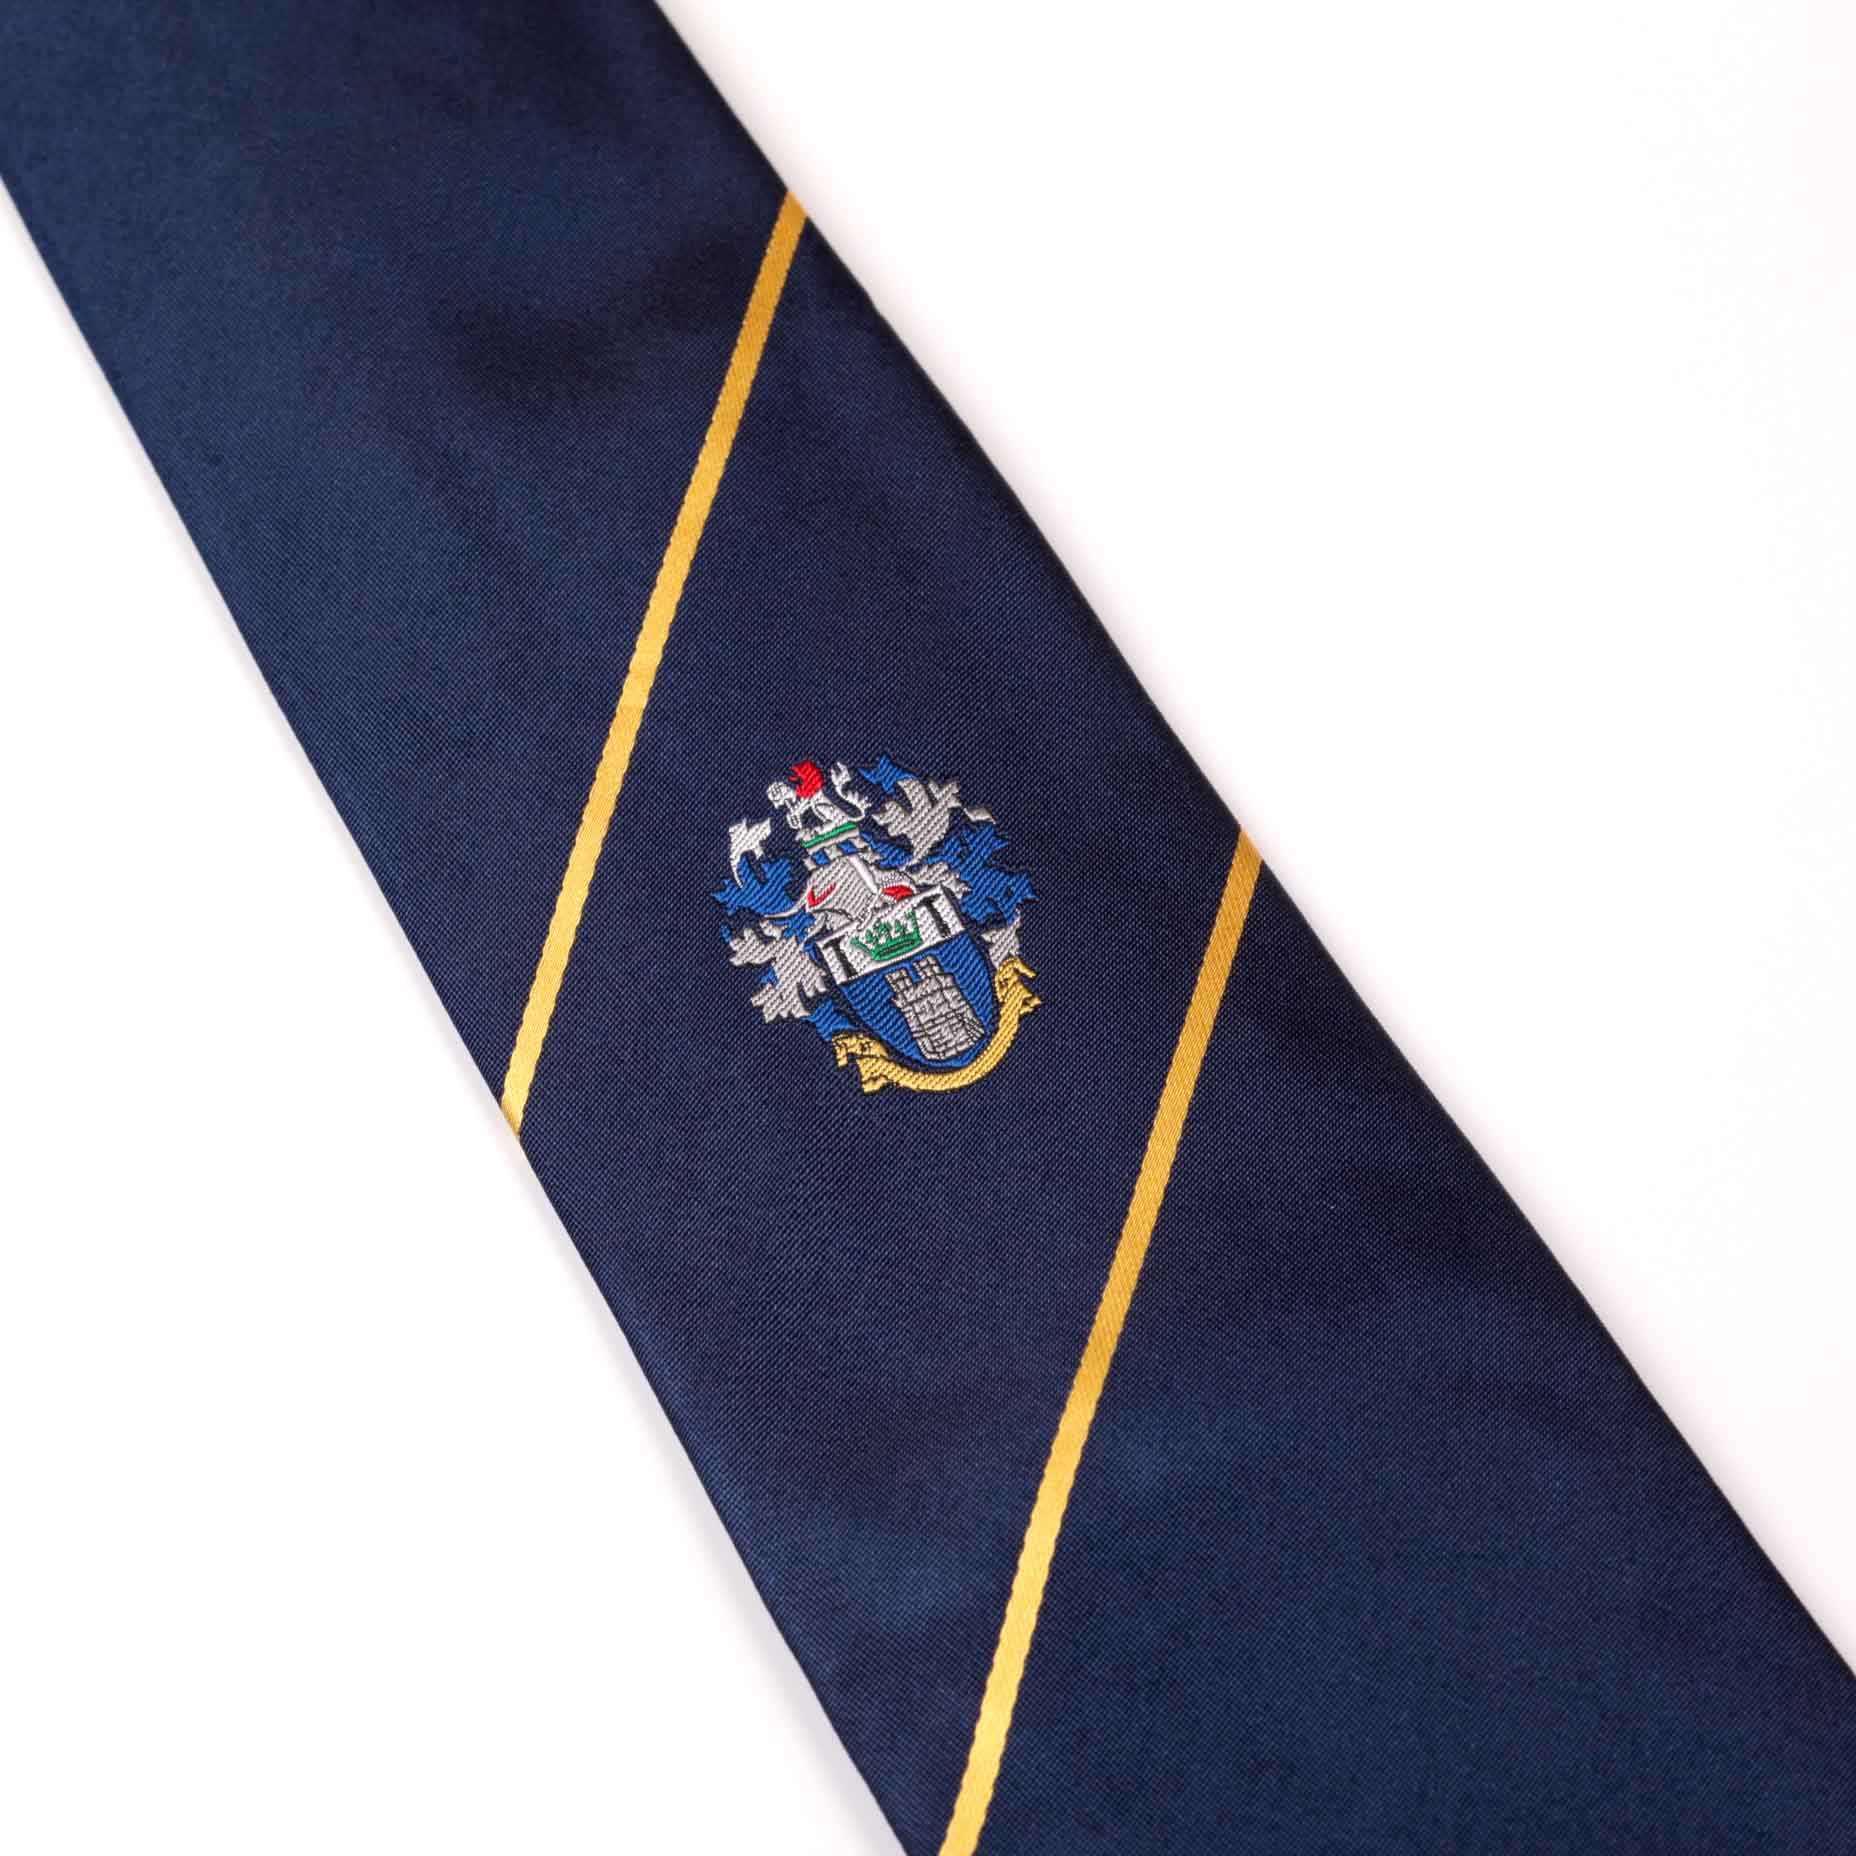 Dark navy blue tie with two gold stripes and embroidered logo